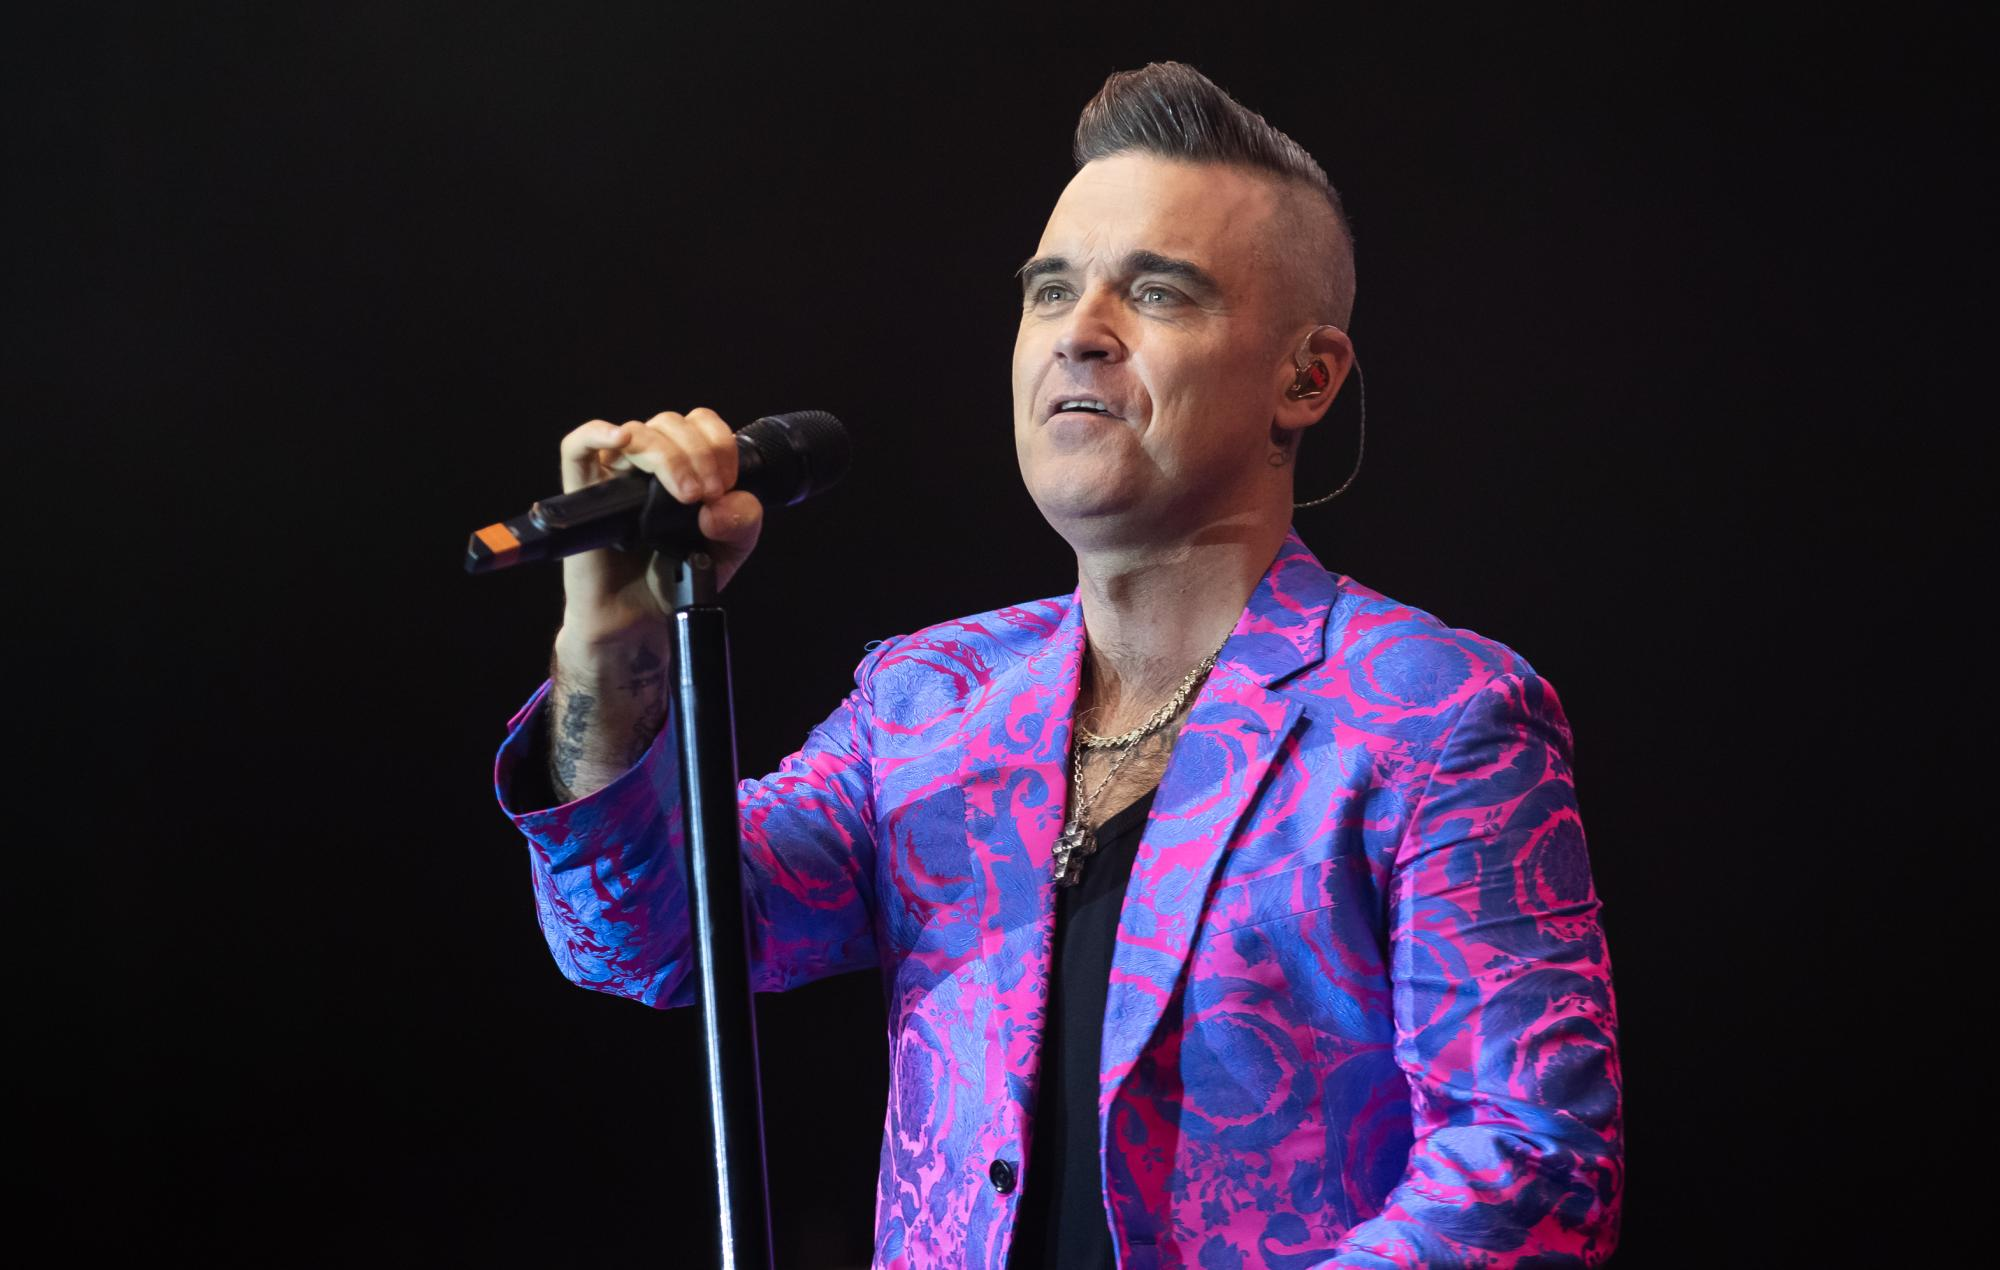 Robbie Williams biopic 'Better Man' will give his songs the 'Rocketman' treatment